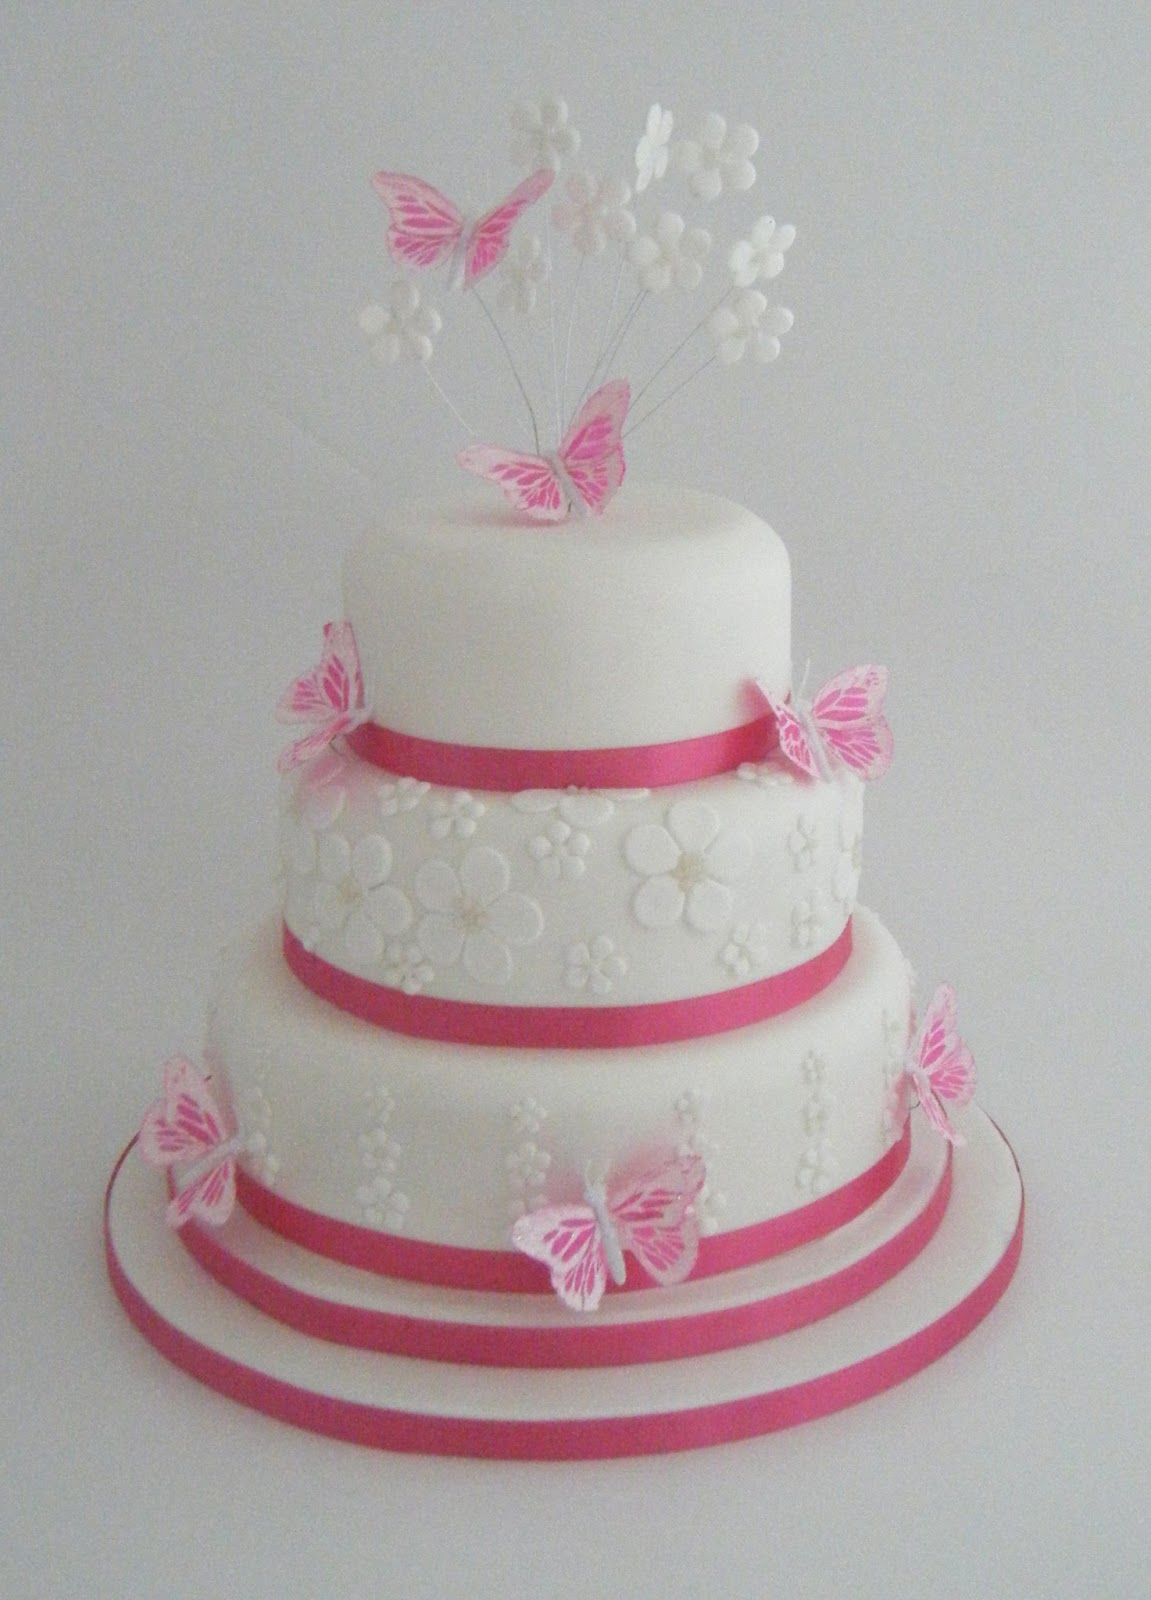 Cake Decoration Wedding : Wedding Cakes: Top 10 Butterfly Wedding Cake Decorations ...